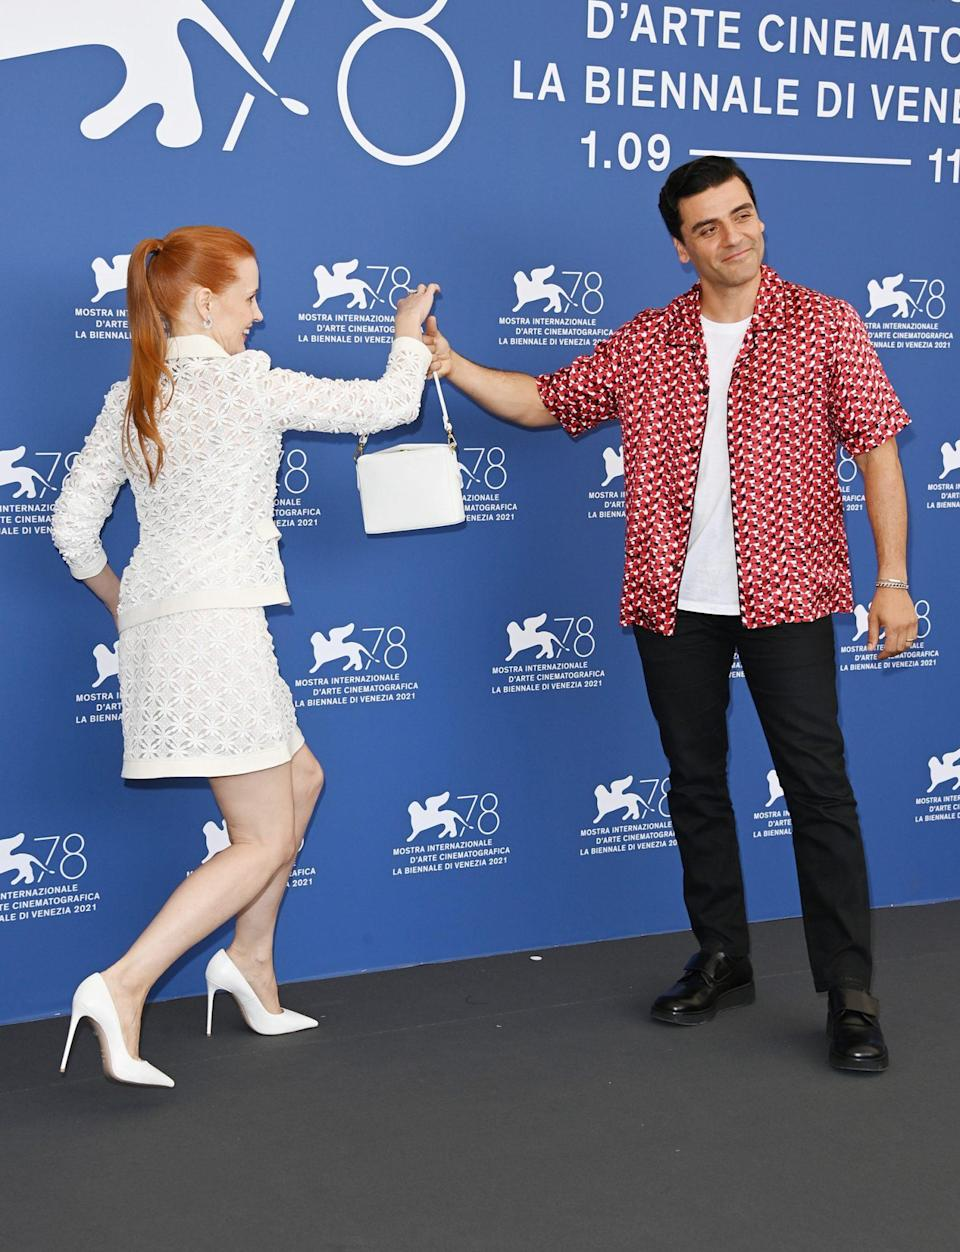 <p>You know that Chastain really trusts Isaac because she let him hold her purse during photo call. </p>